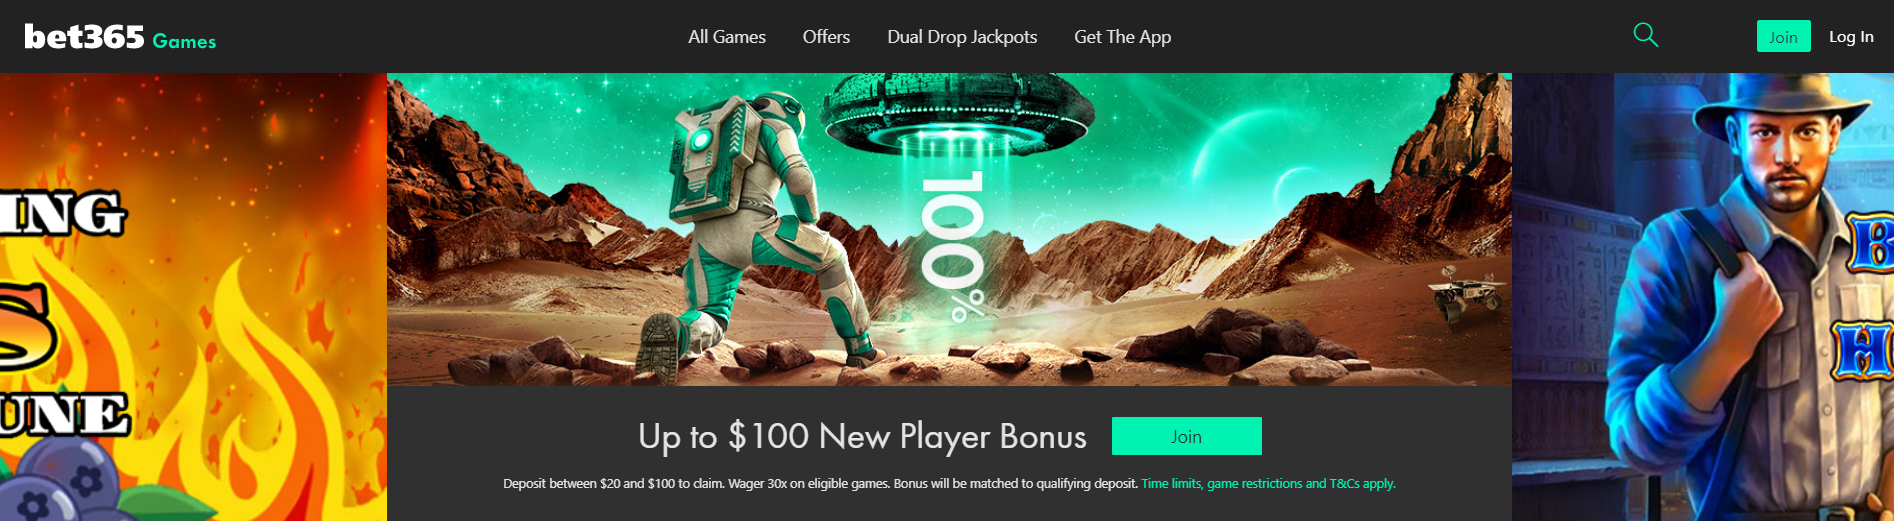 bet365-casino_main